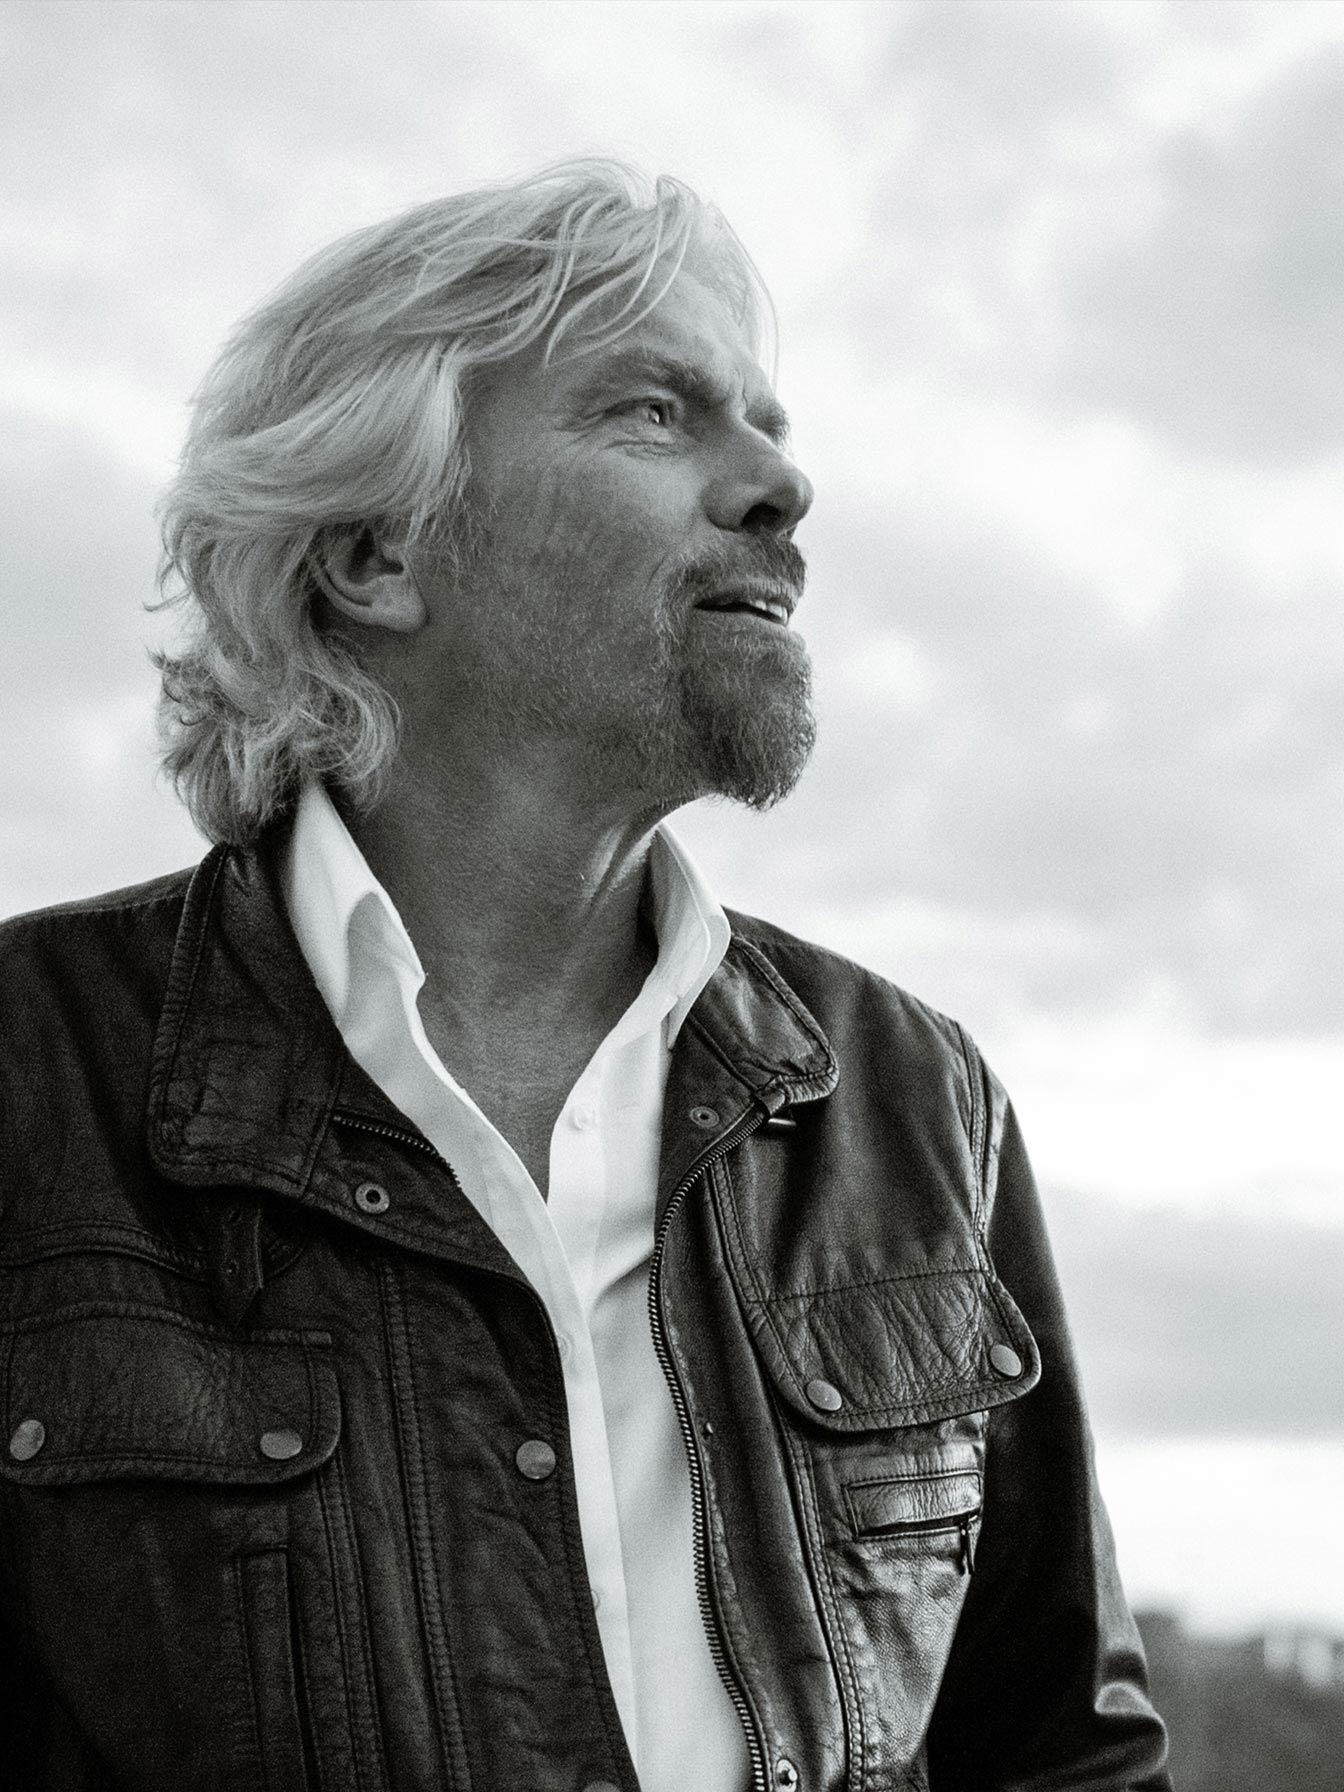 A black and white portrait of Richard Branson.